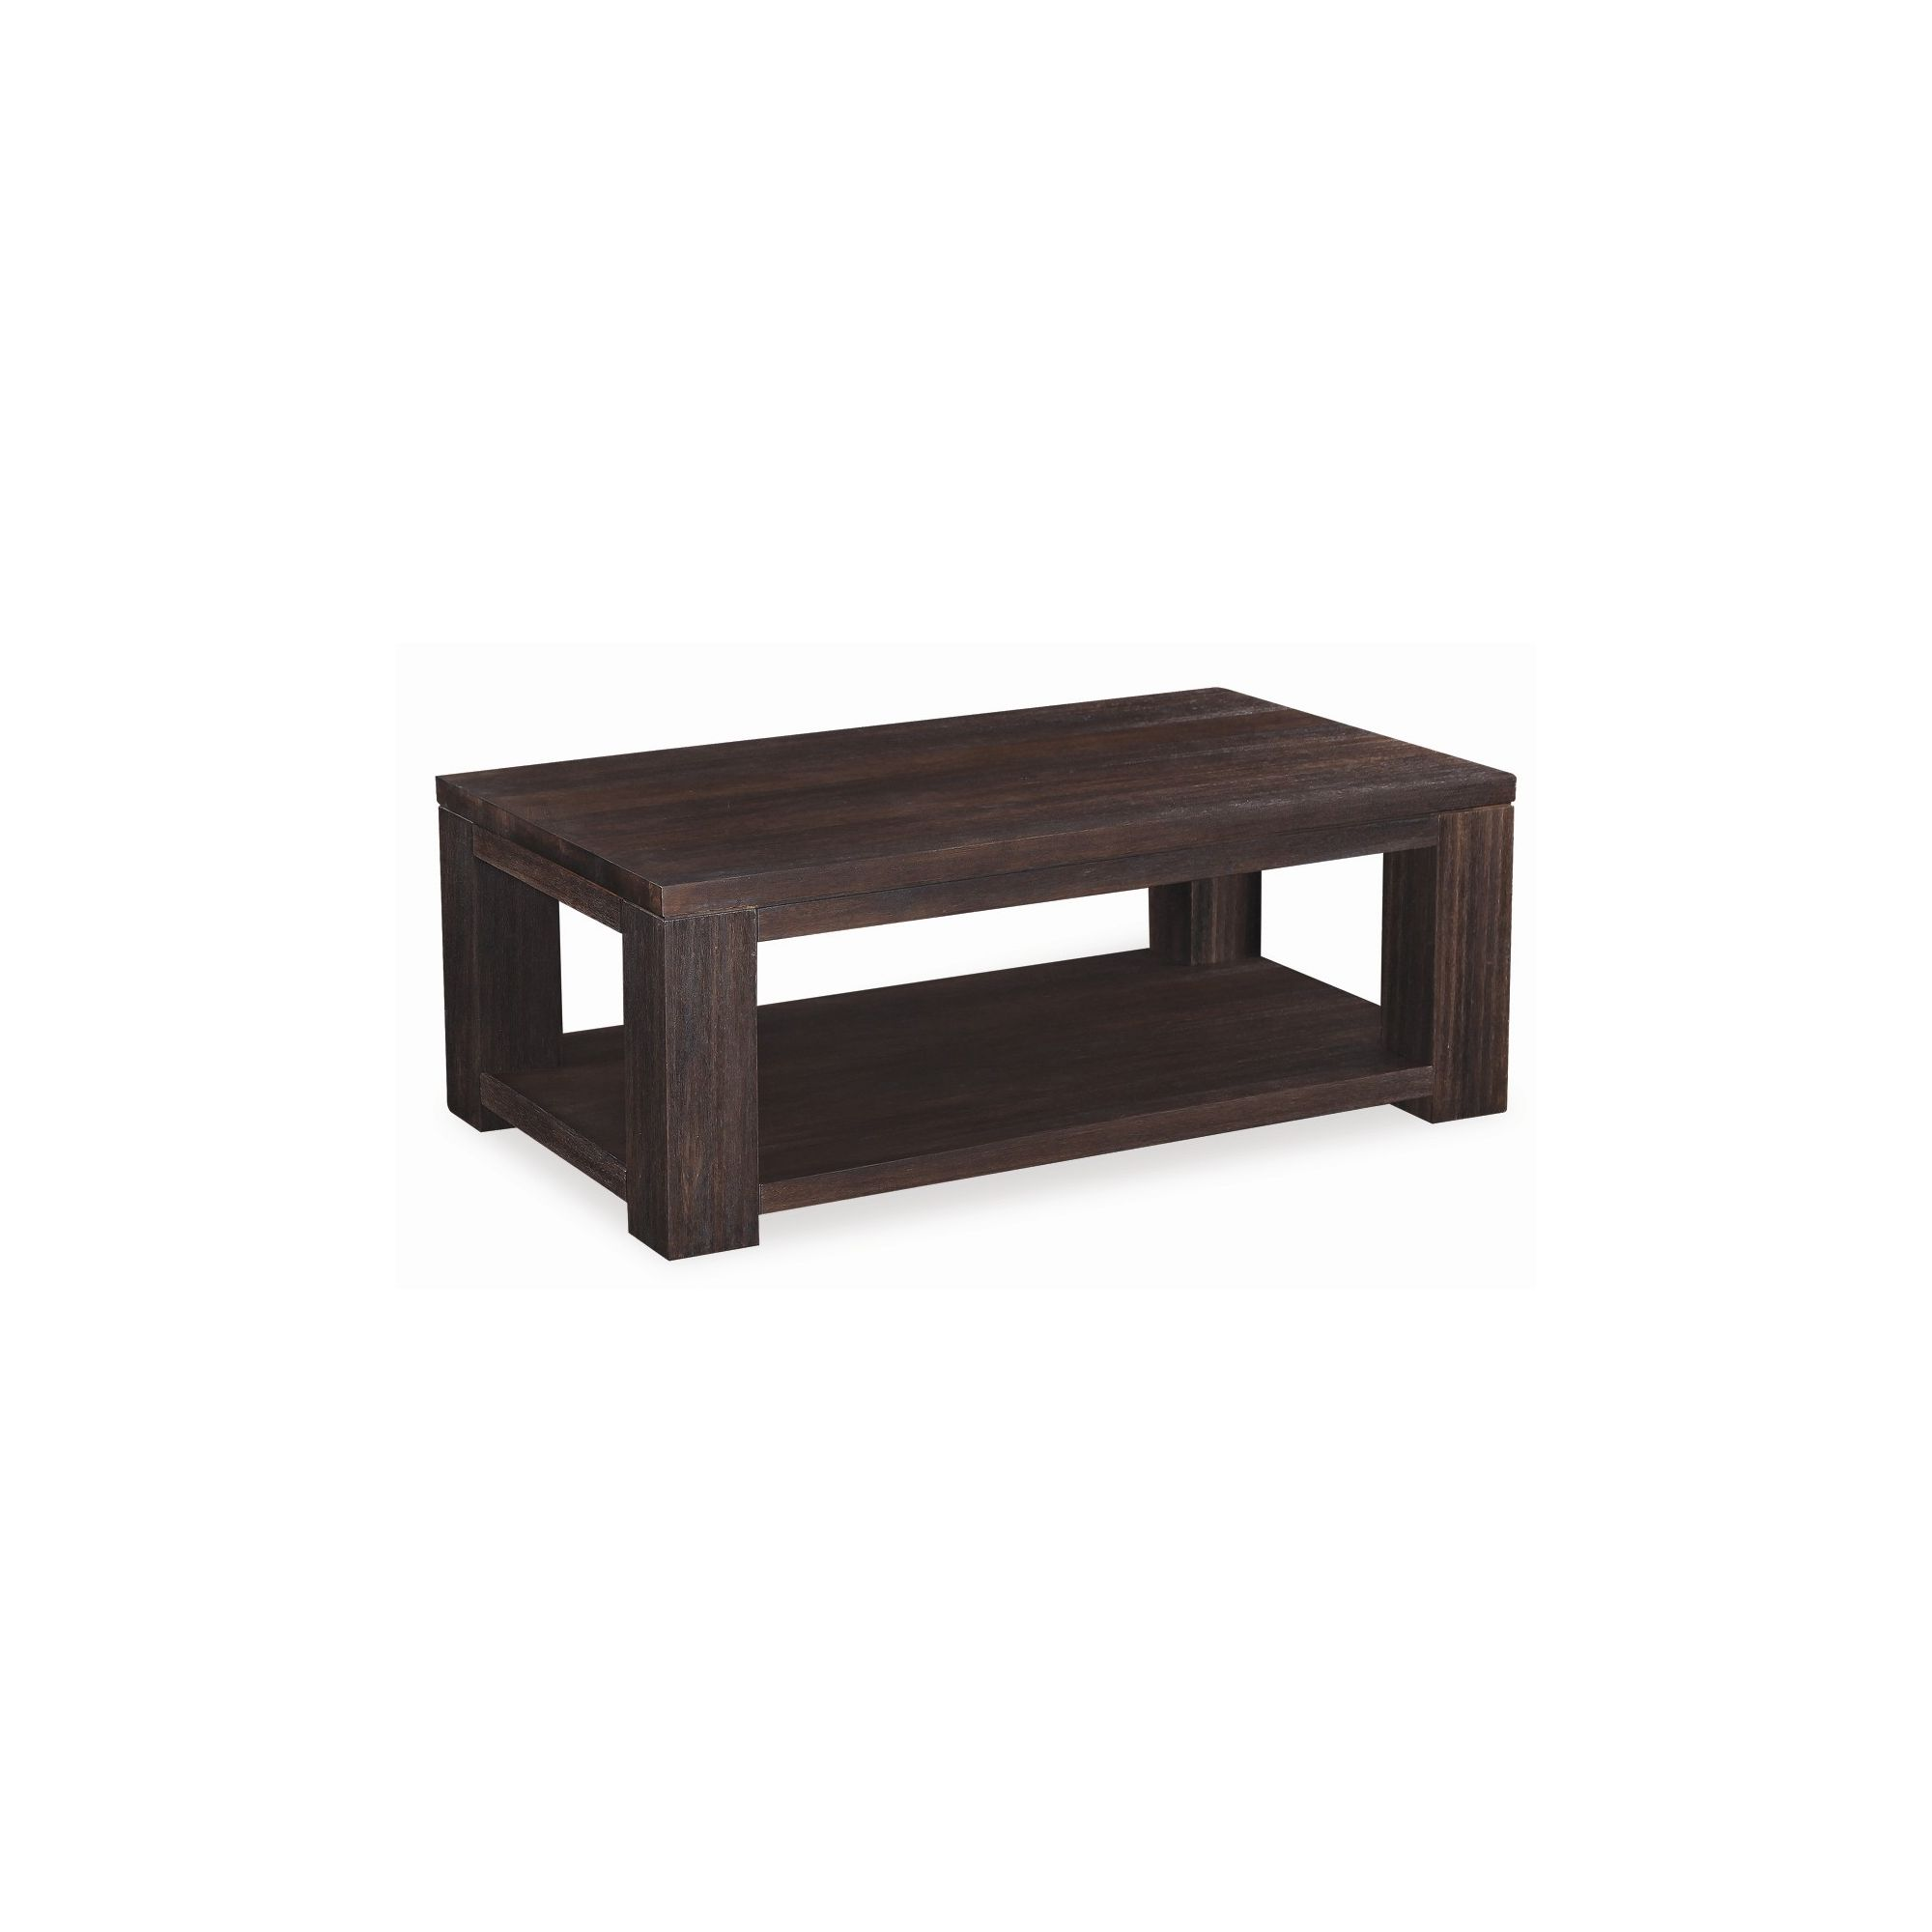 Alterton Furniture Plantation Coffee Table at Tesco Direct